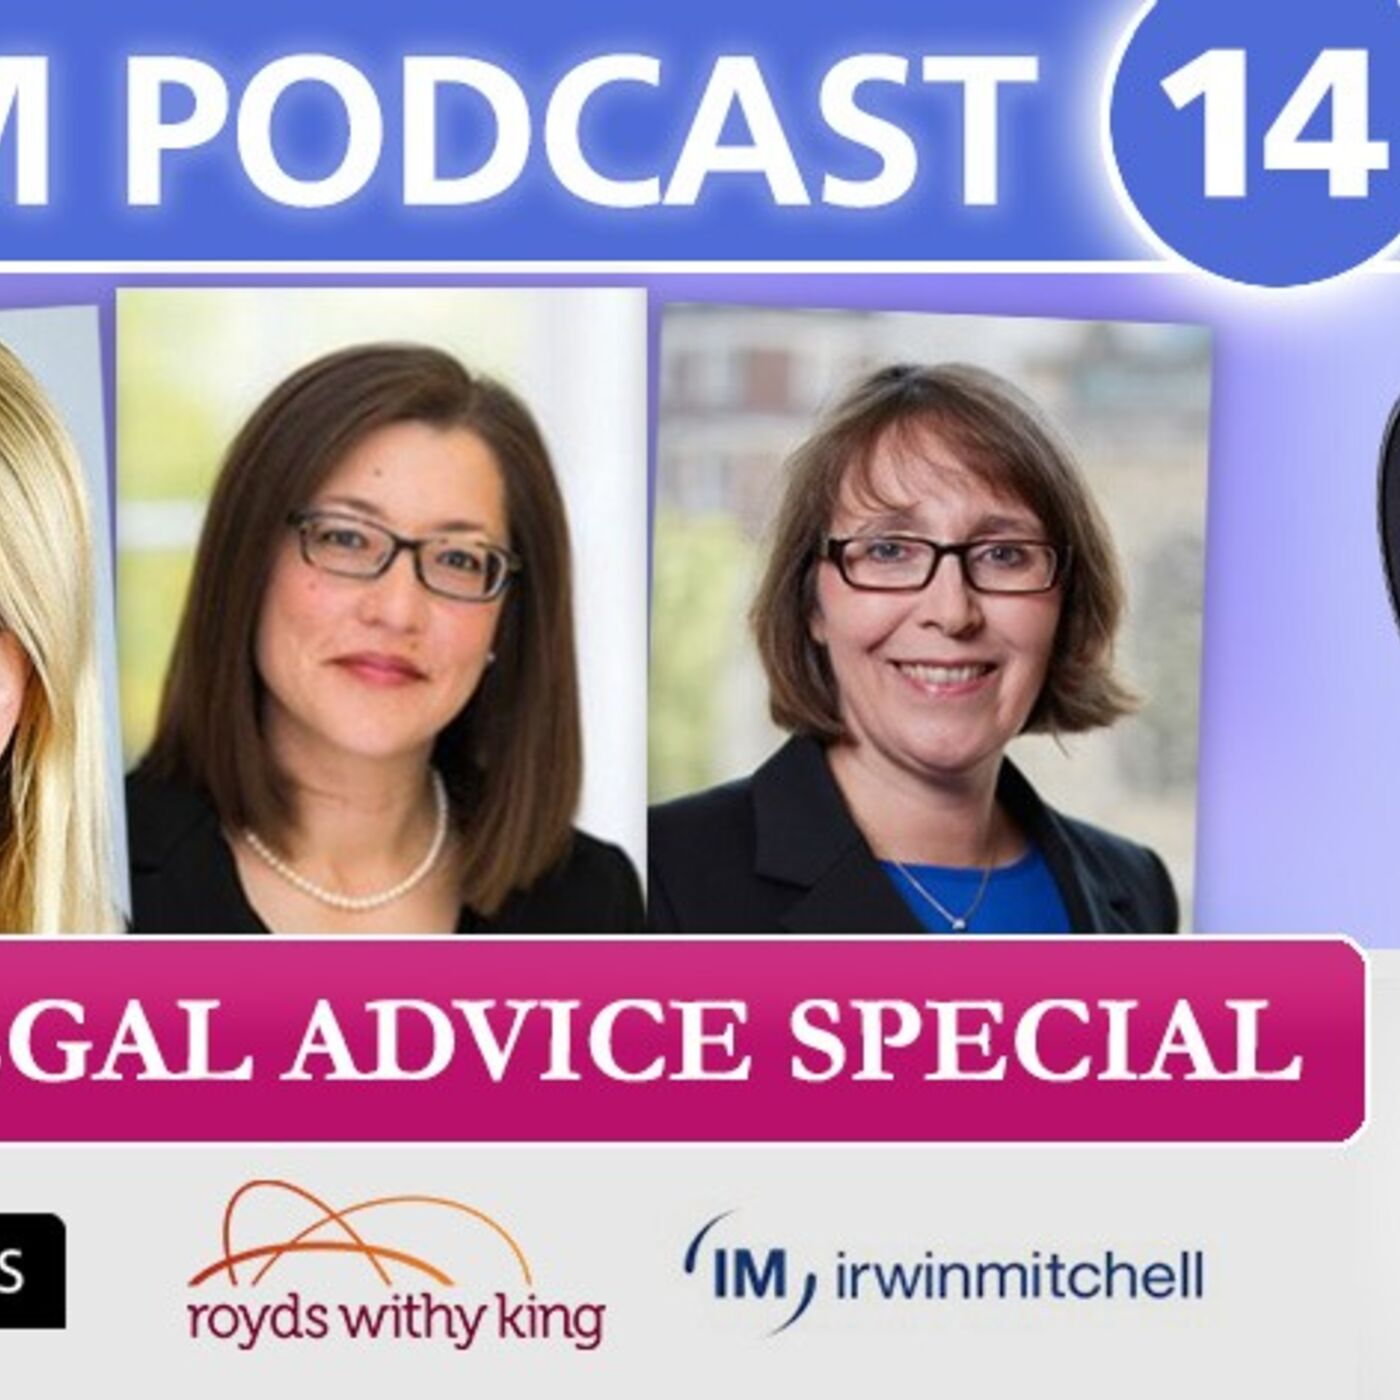 Care Home Management Podcast - Legal Advice Special